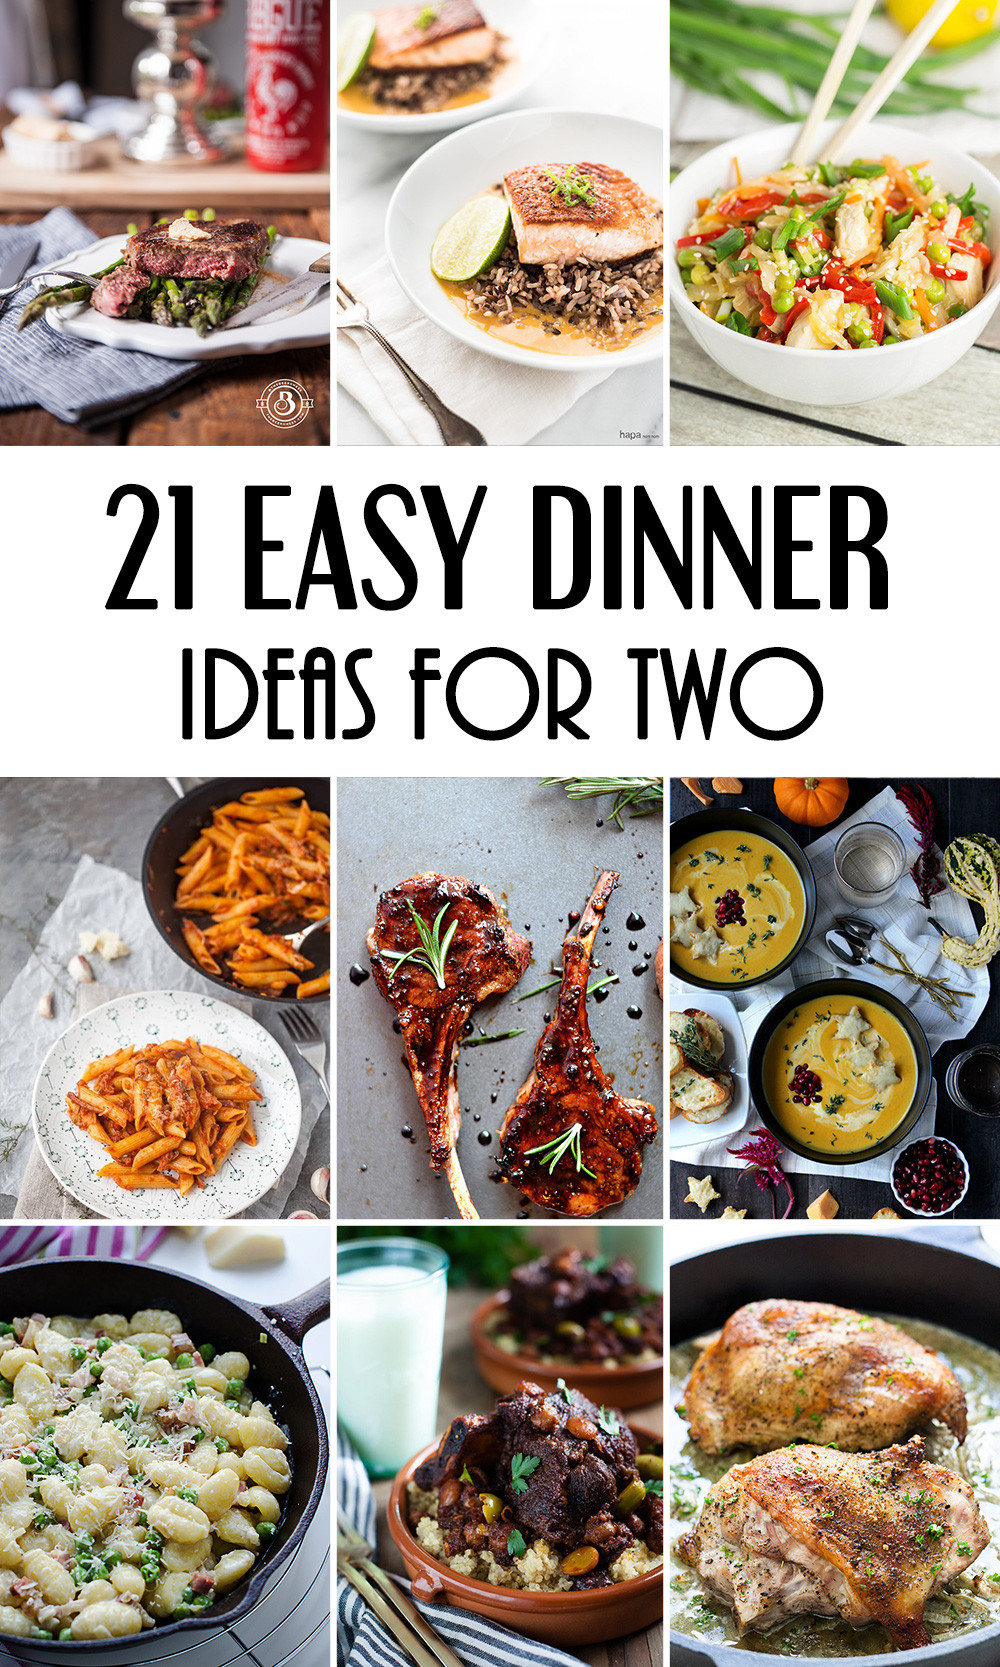 Healthy Dinner Ideas For One  21 Easy Dinner Ideas For Two That Will Impress Your Loved e